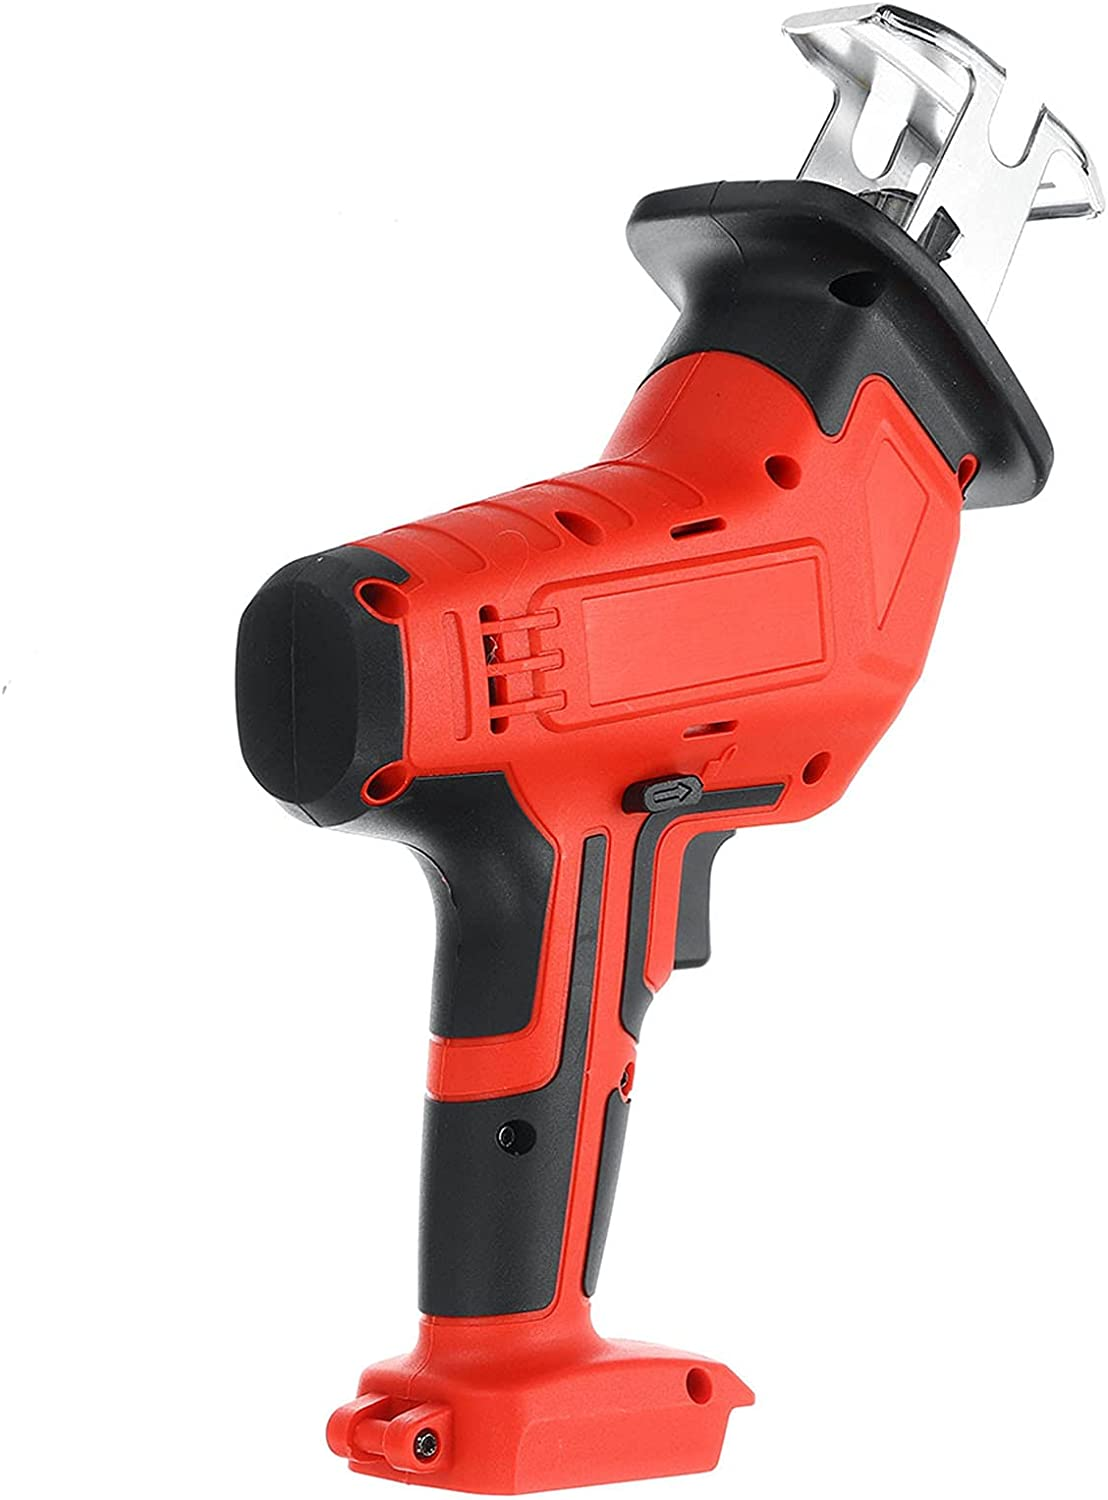 Tqing Cordless Electric Reciprocating Free At the price of surprise Shipping Cheap Bargain Gift Saw Variab 21V 3000Rpm Min